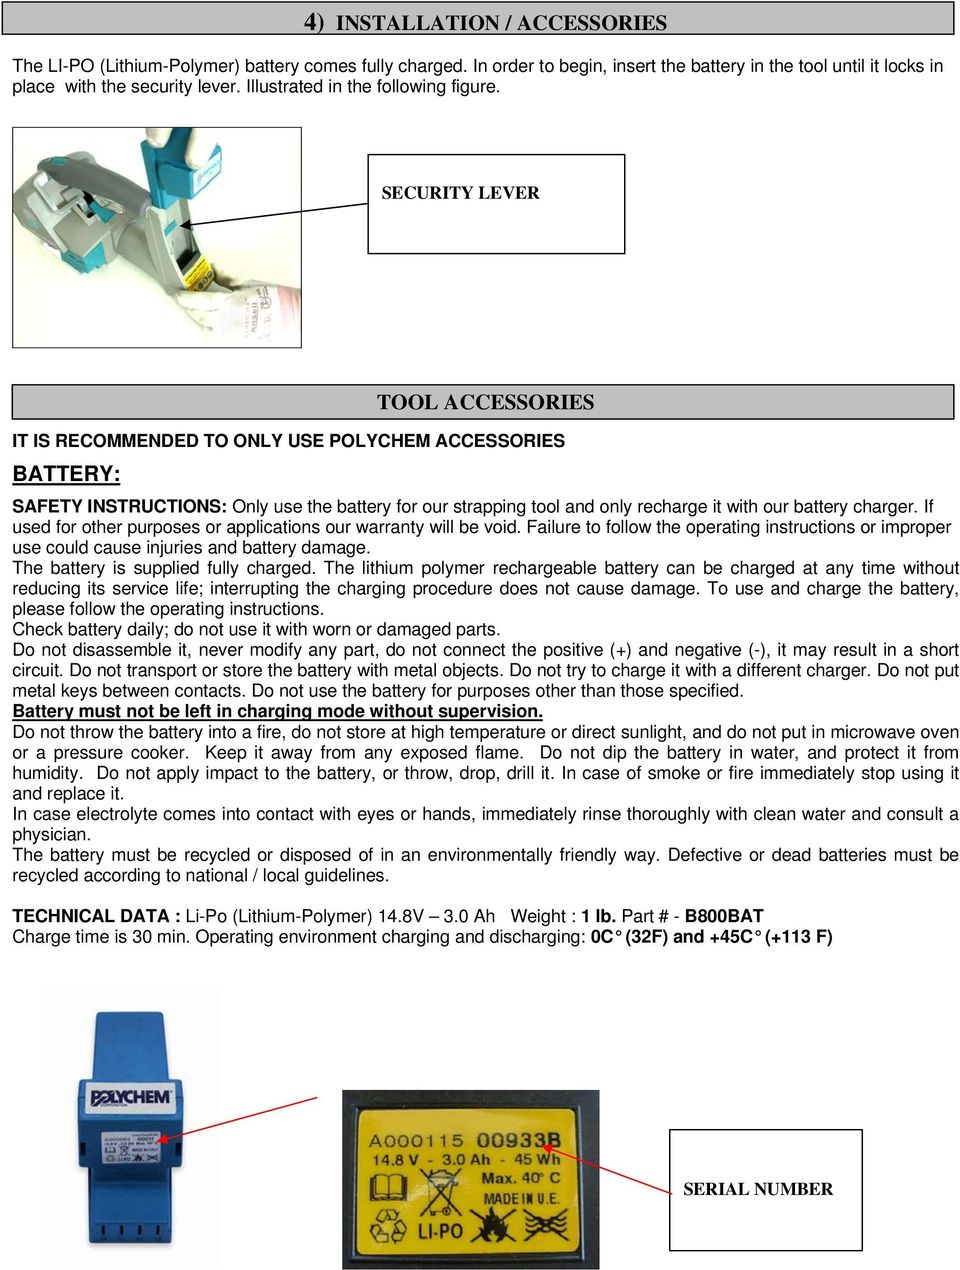 POLYCHEM OPERATION MANUAL SPARE PARTS LIST B800 BATTERY